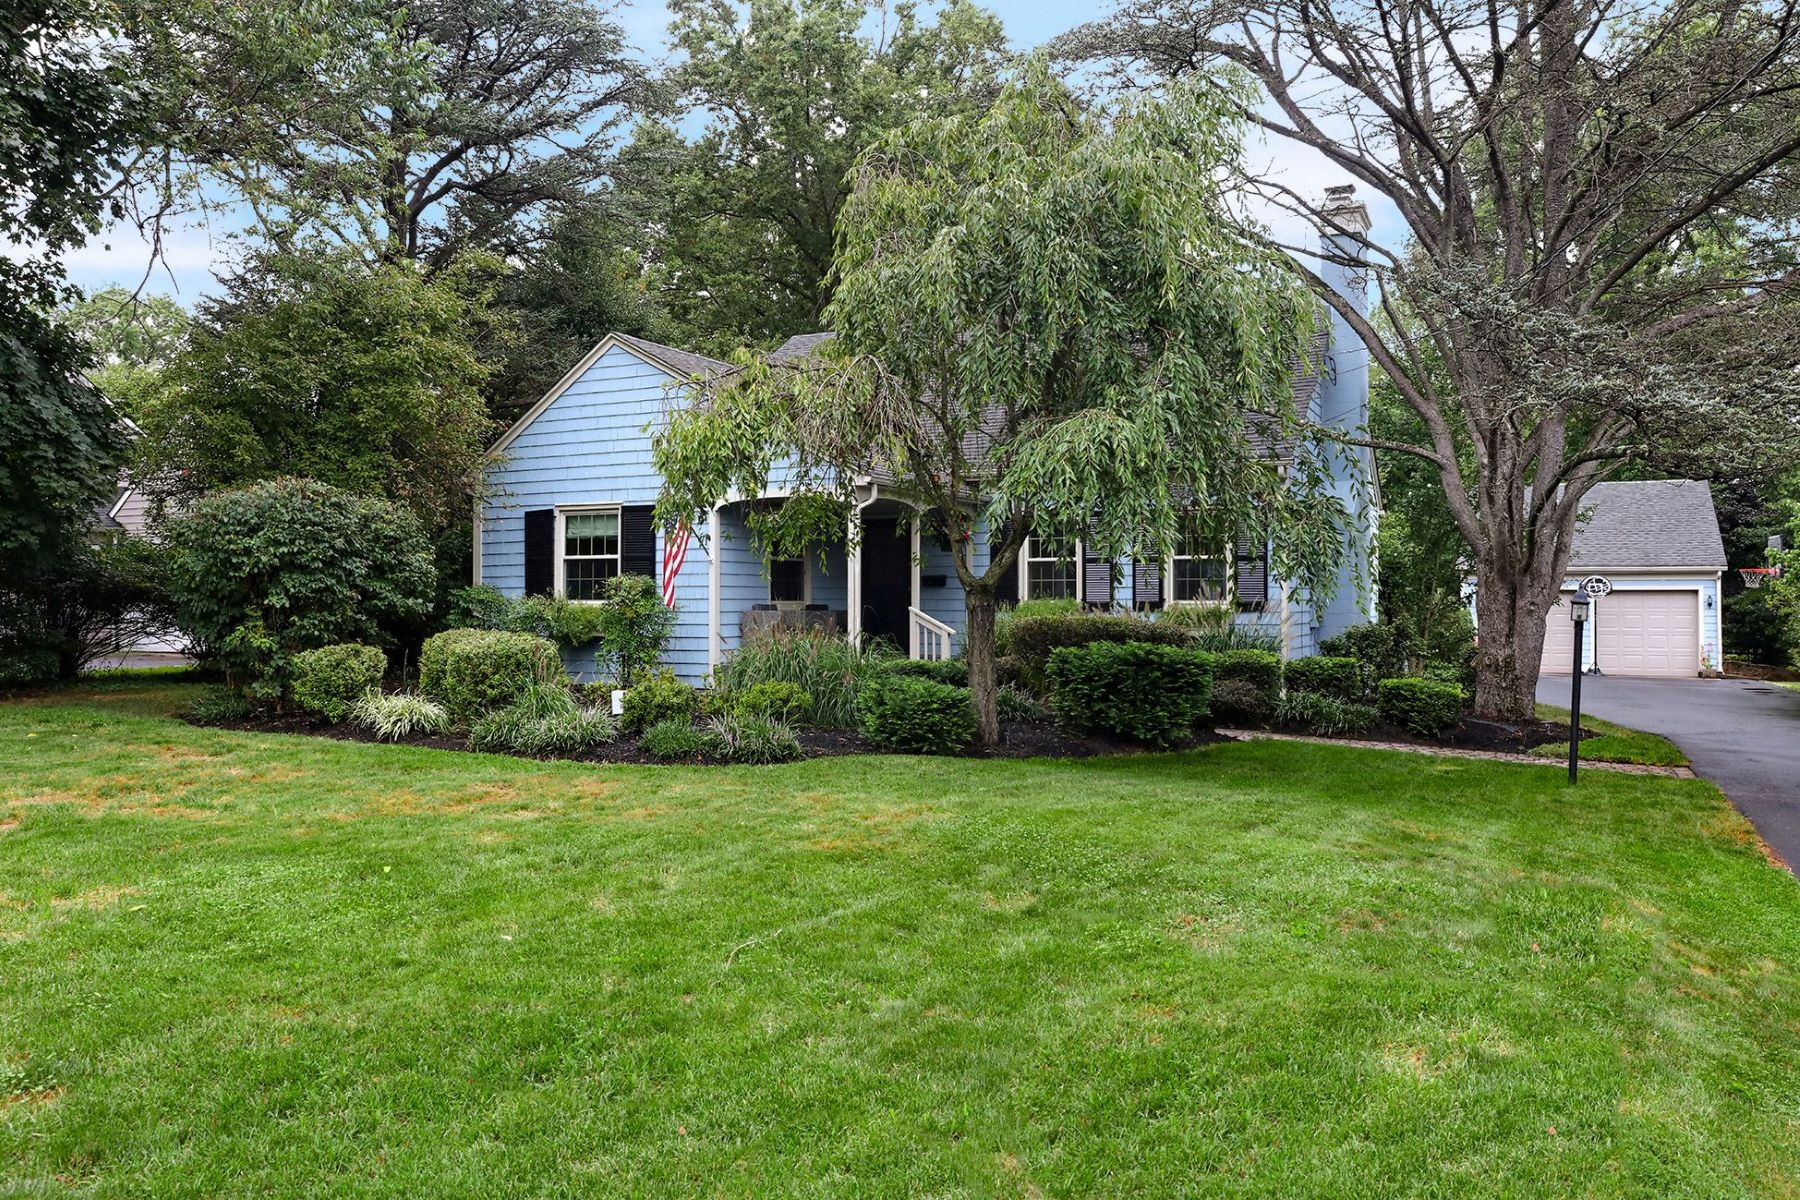 Single Family Homes for Sale at Absolutely Delightful Expanded Cape 11 Maple Lane, Pennington, New Jersey 08534 United States